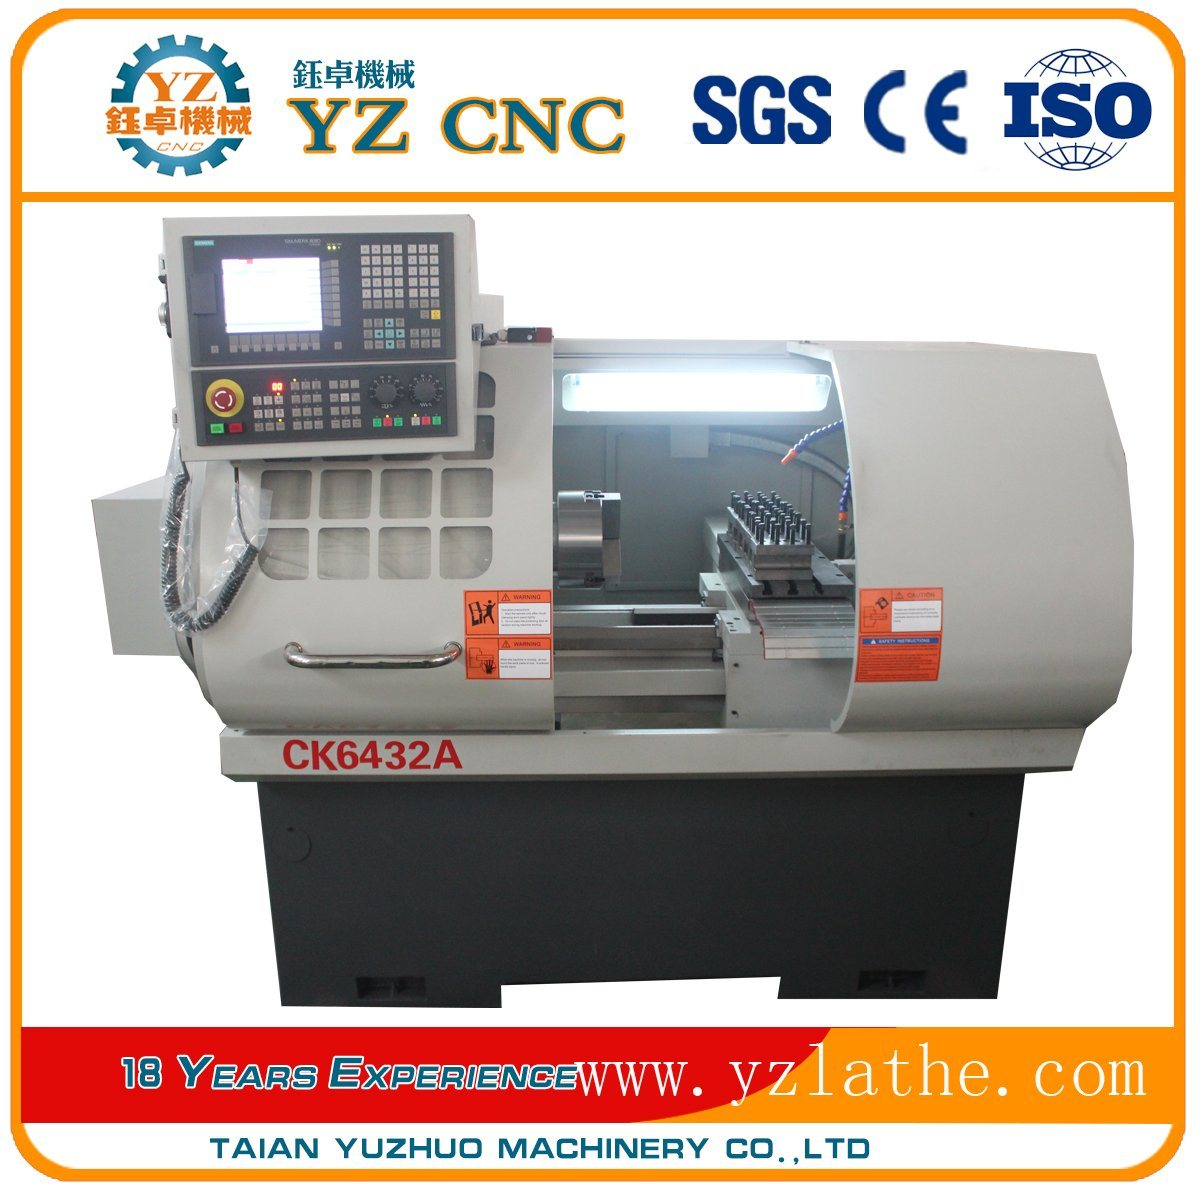 Ck6432A Horizontal Flat Bed High Quality CNC Lathe Machine Machine Tools